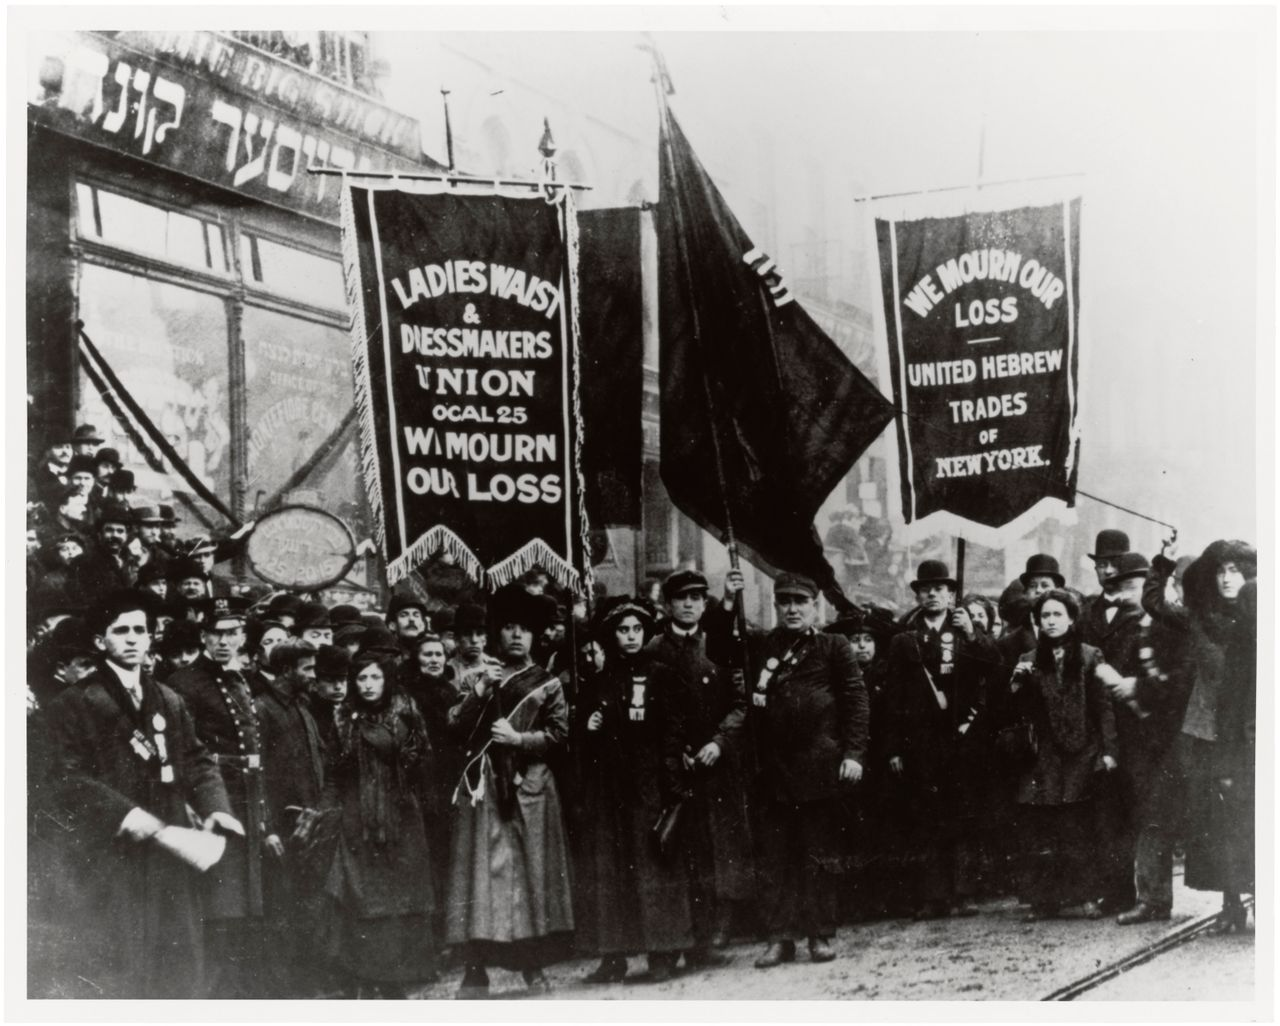 1911 protest after the Triangle Shirtwaist factory fire killed 146 young immigrant workers